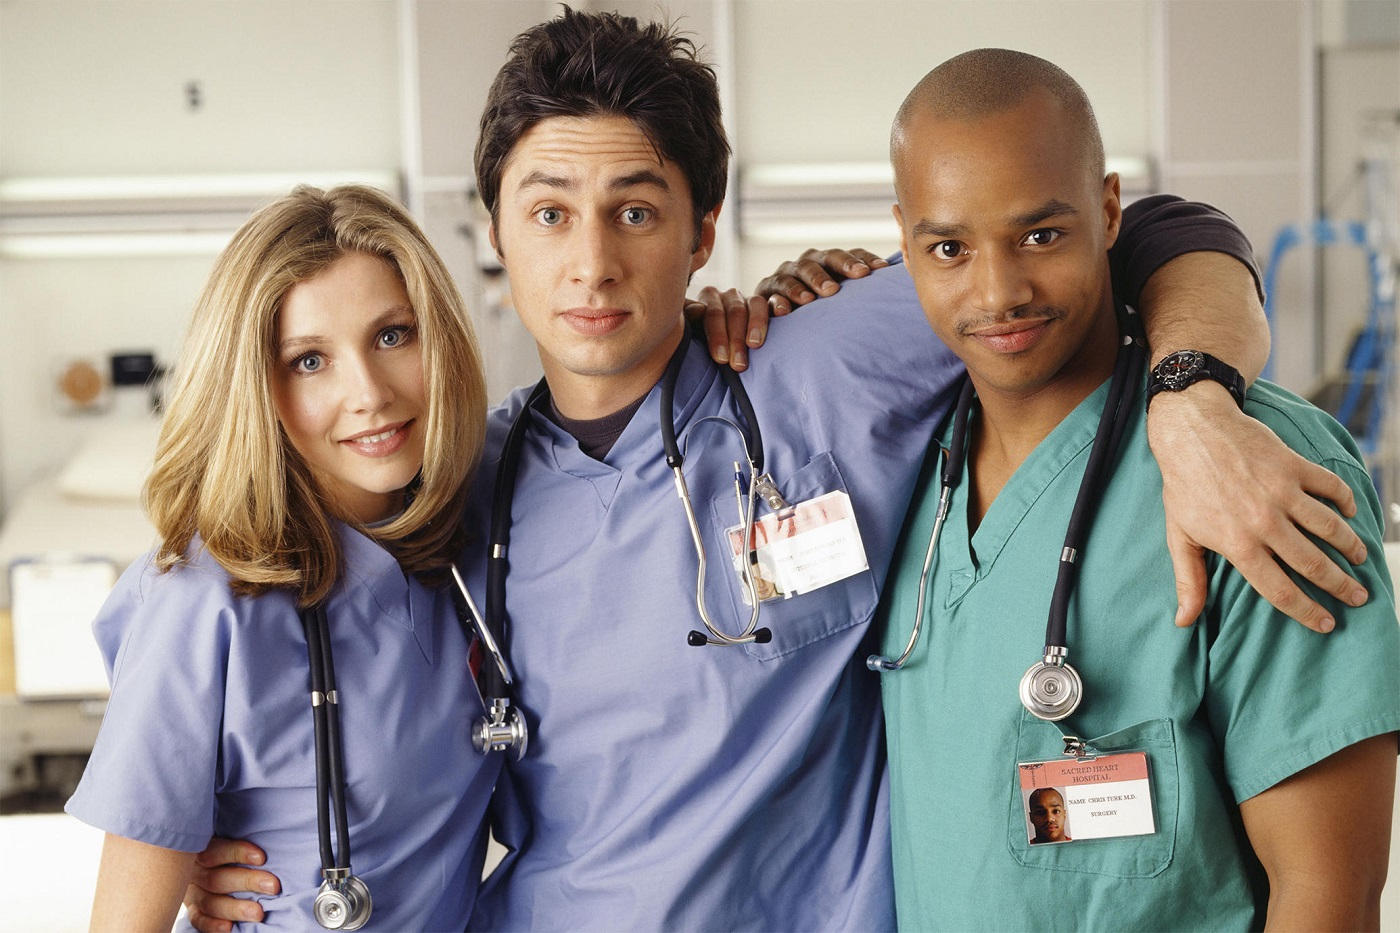 scrubs - serie tv